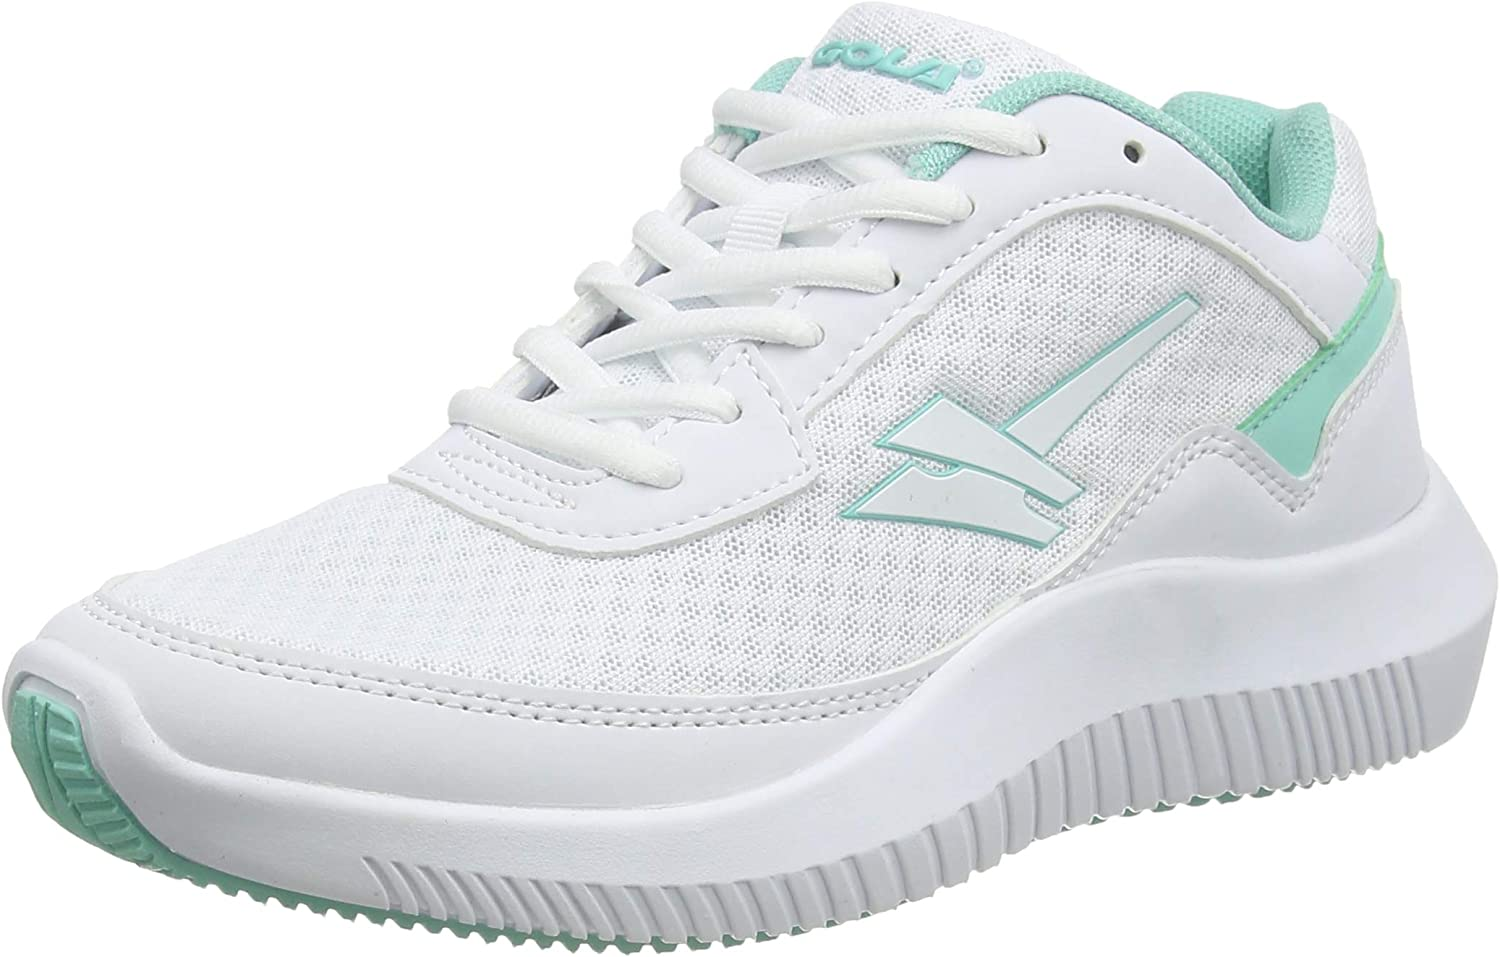 Gola Womens Ladies New Limited price sale mail order Wexford Sneaker